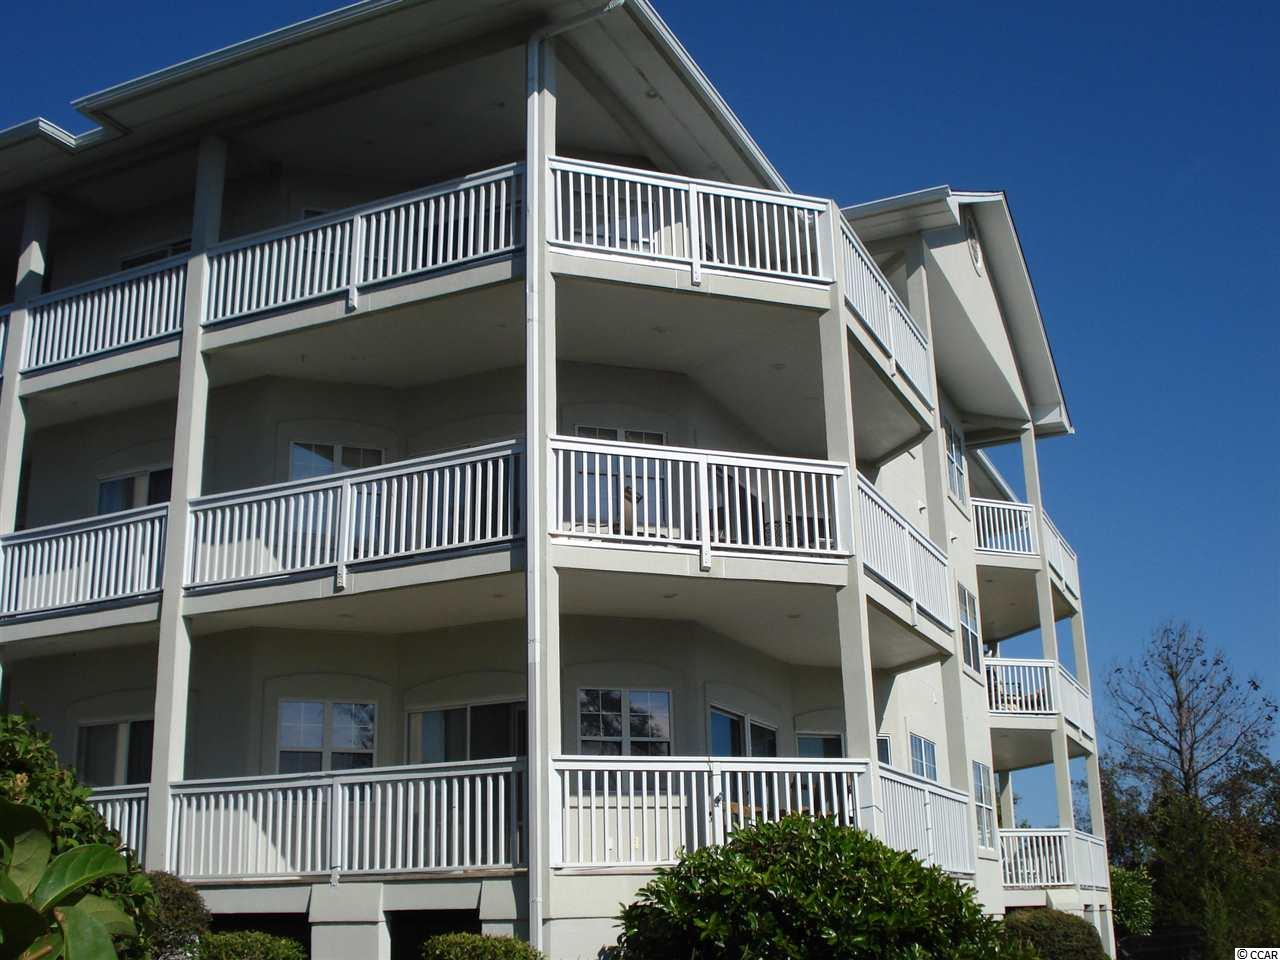 Spinnaker Cove Condos For Sale In Myrtle Beach South Carolina